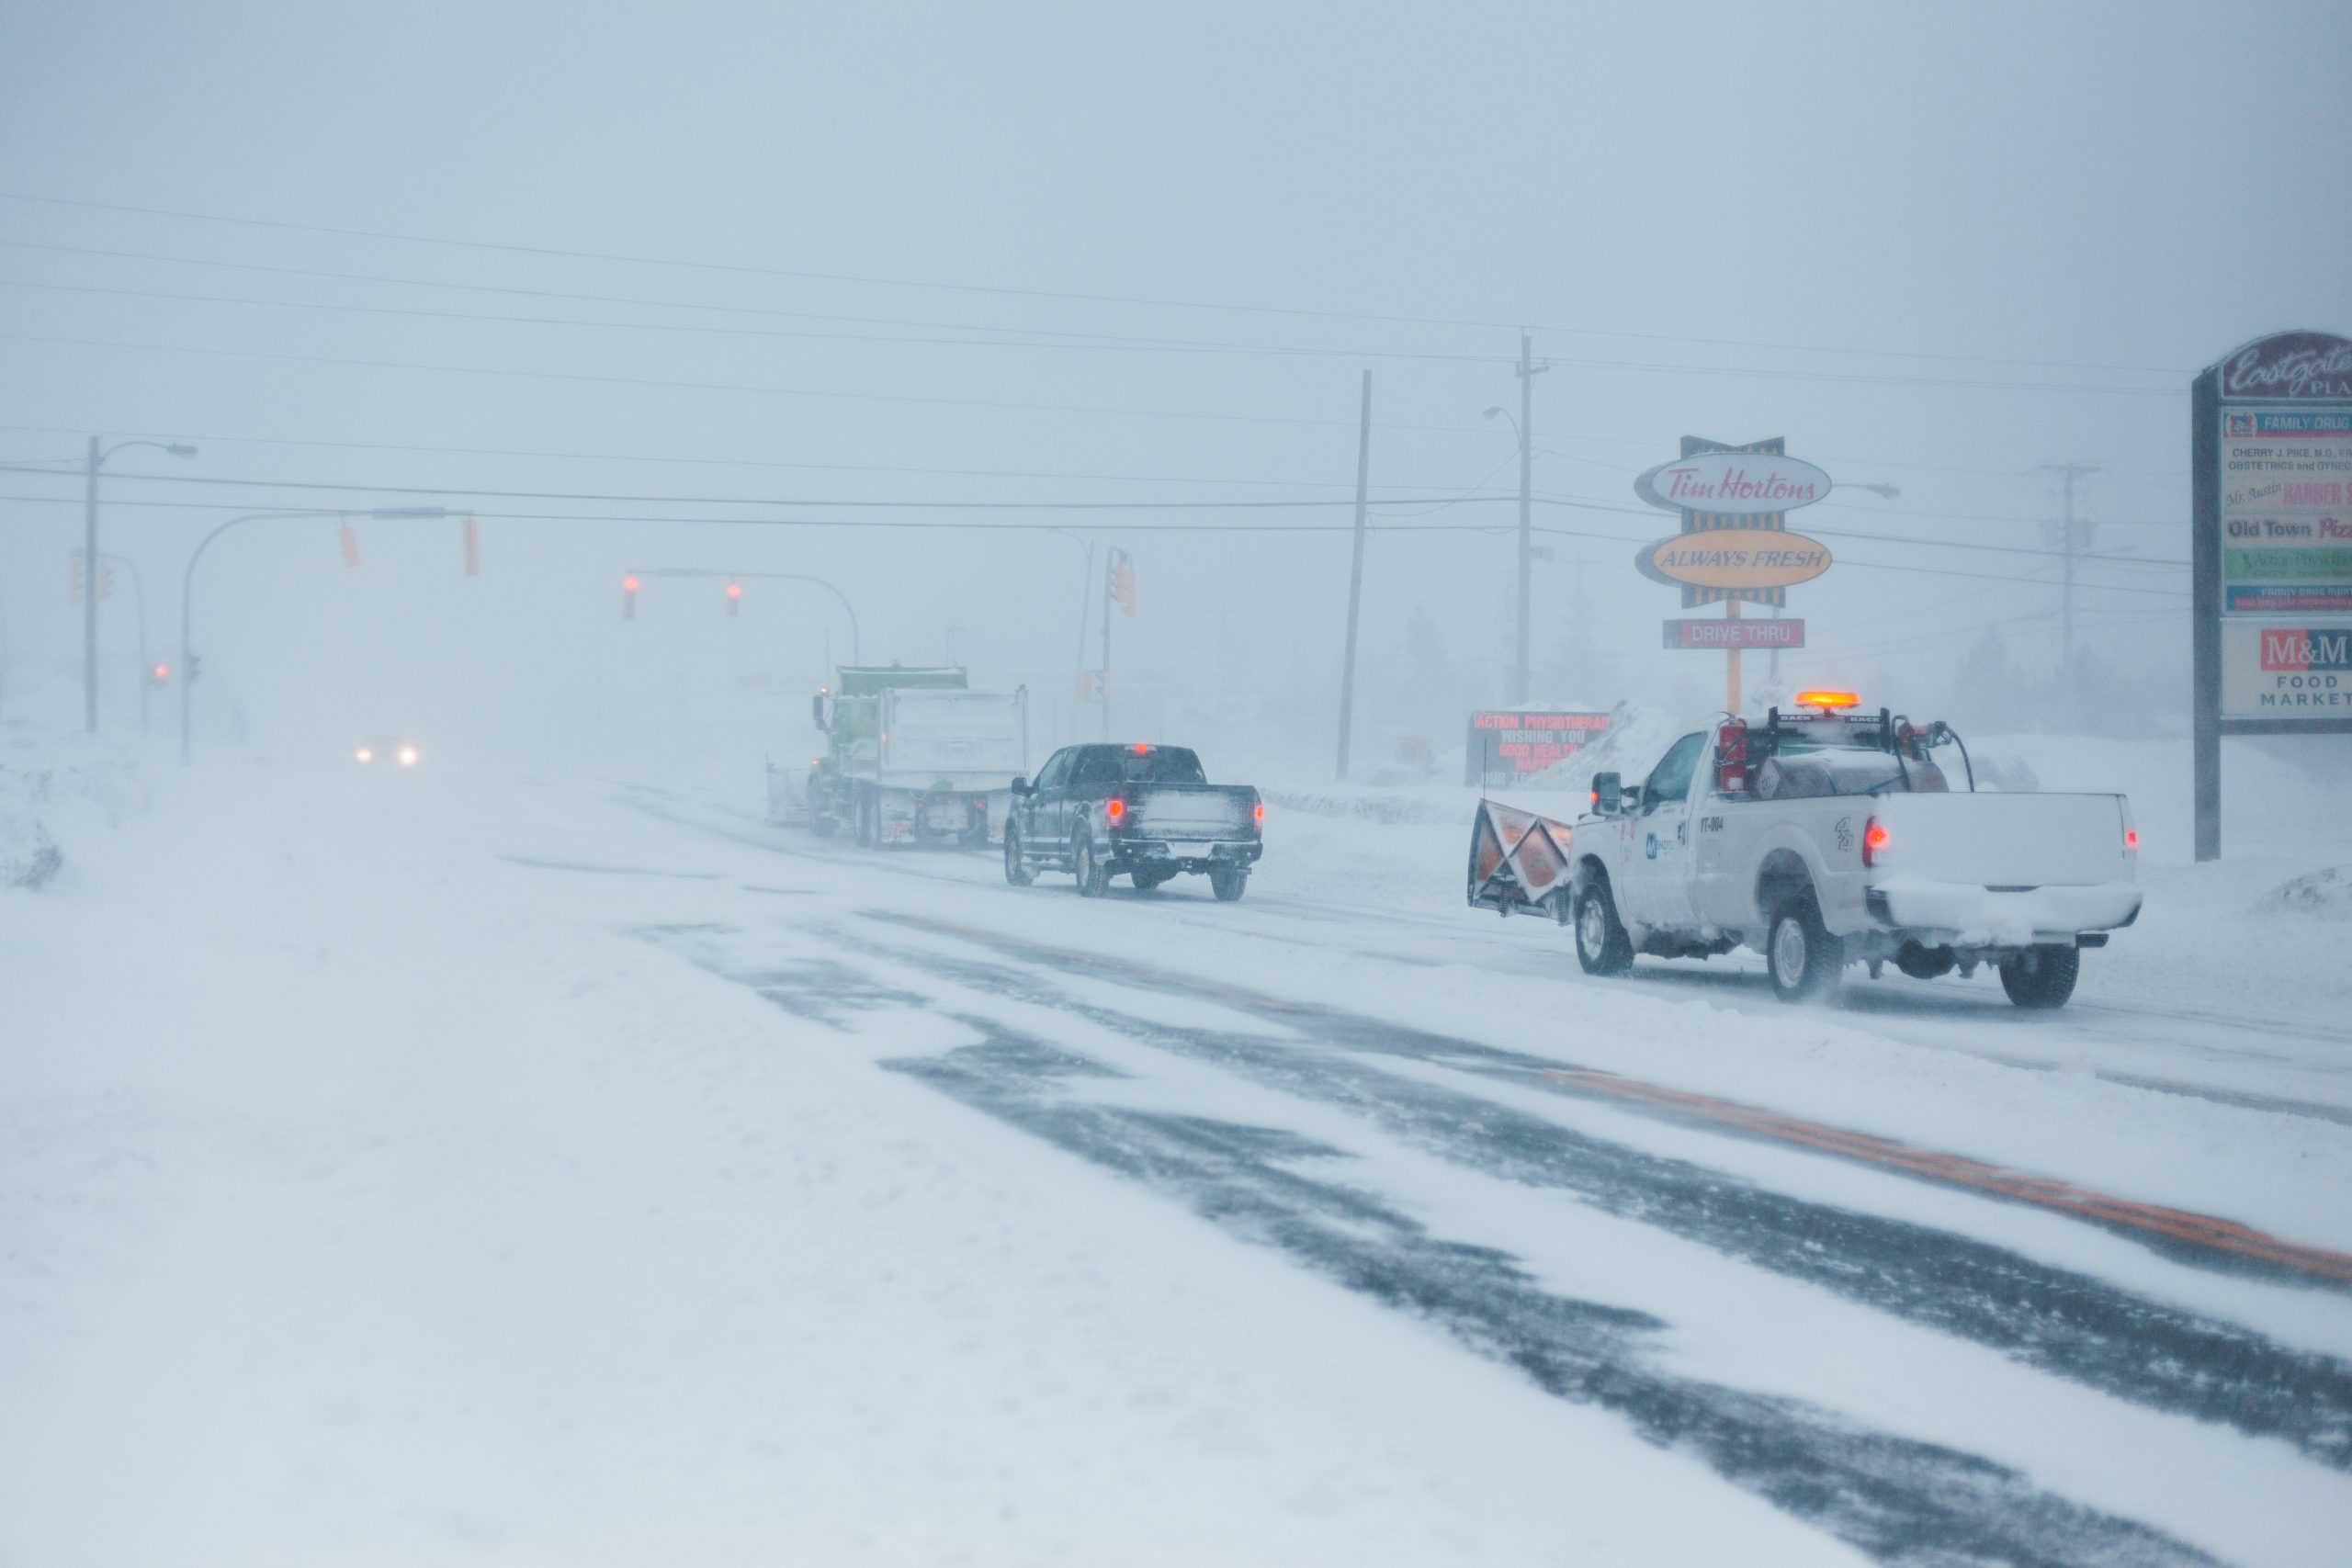 Cars drive carefully in the snow to avoid auto body repairs.